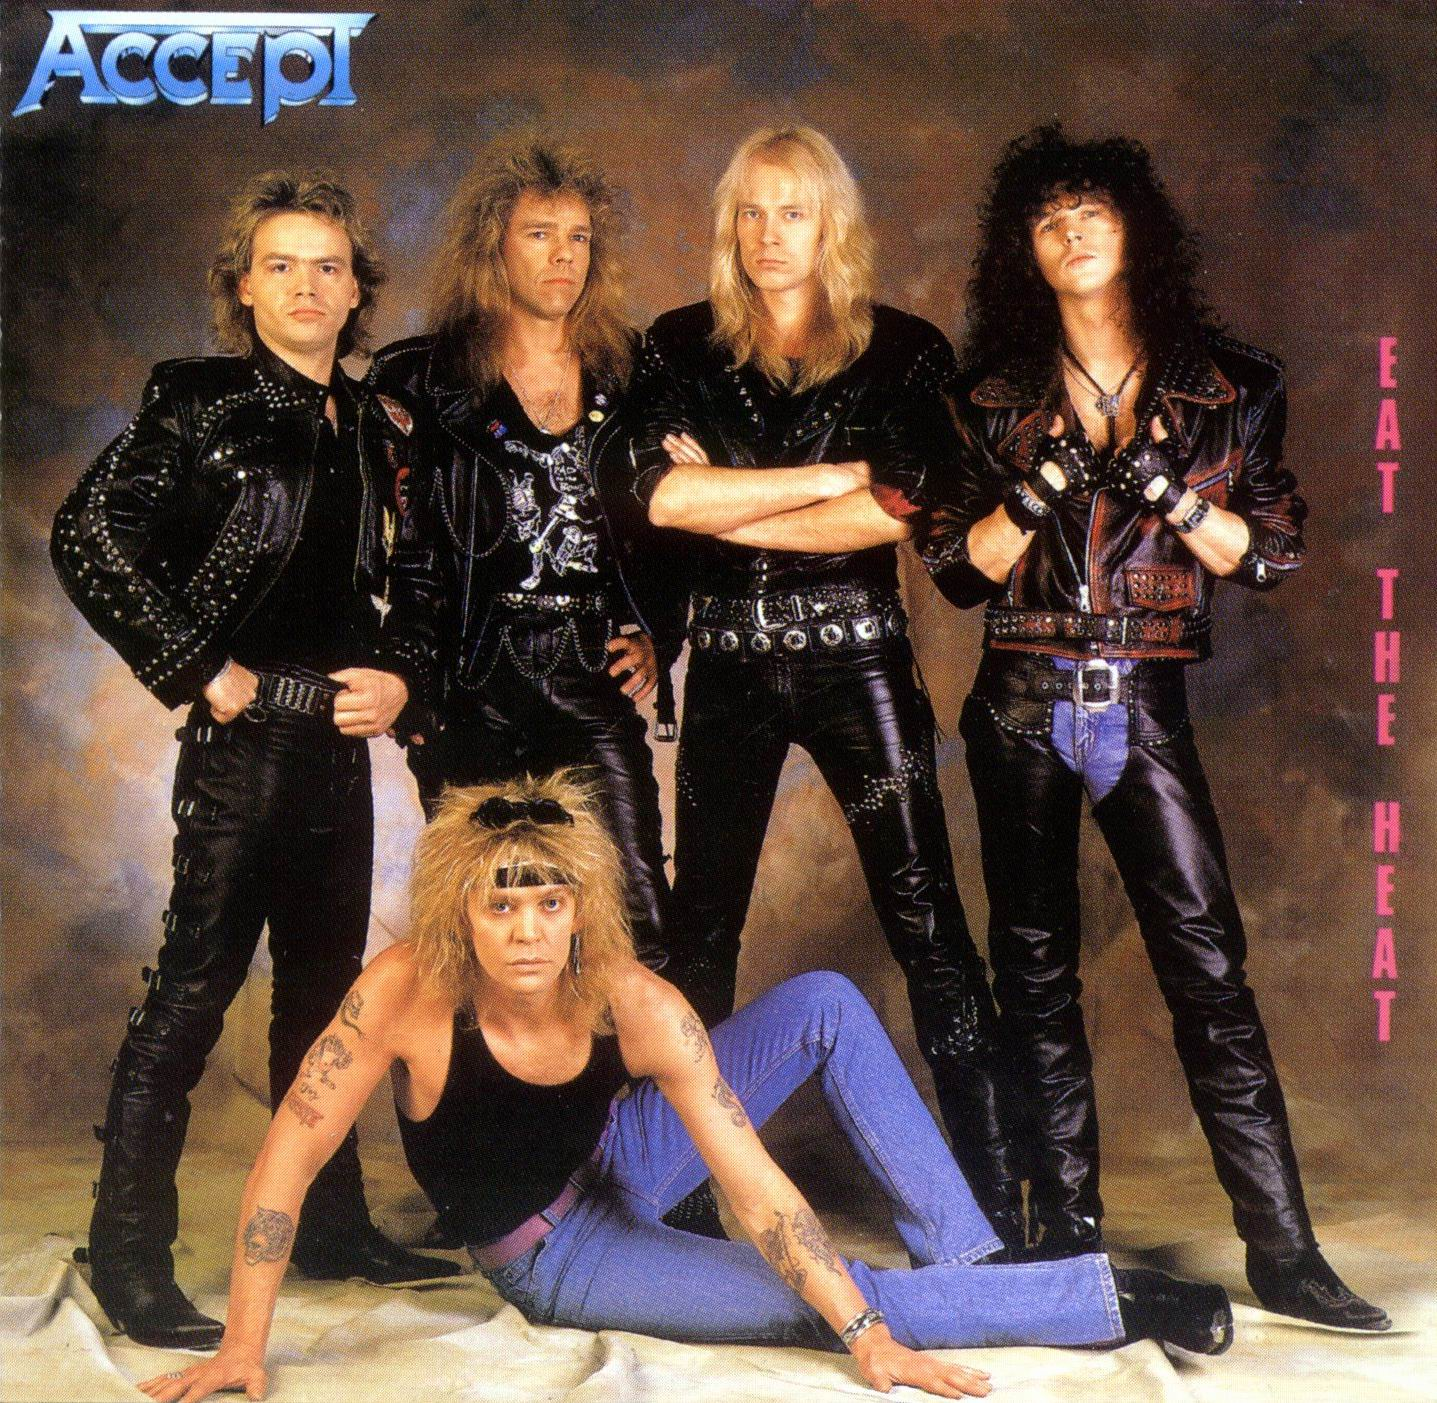 Accept - Eat The Heat [1989]